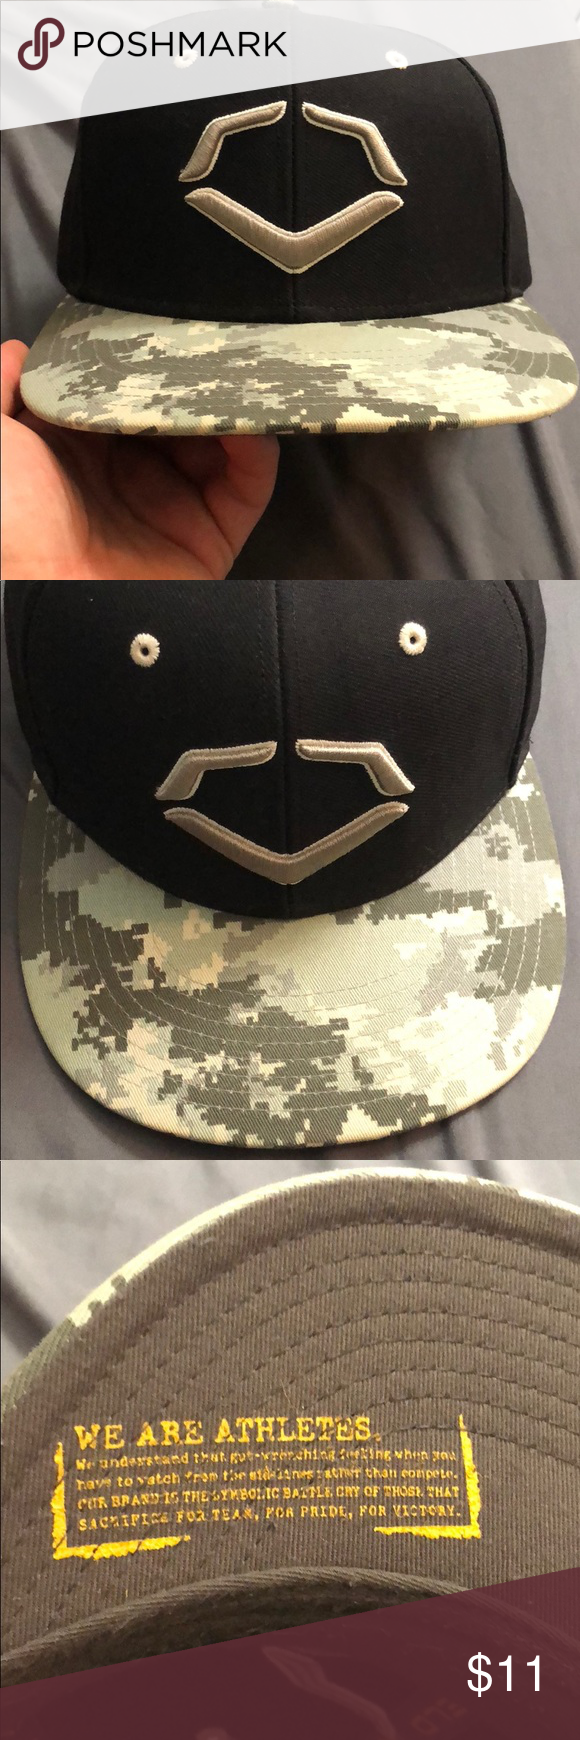 new arrivals 5fd2f 30f77 ... purchase evoshield snapback hat up for sale is an evoshield snapback hat.  the hat features